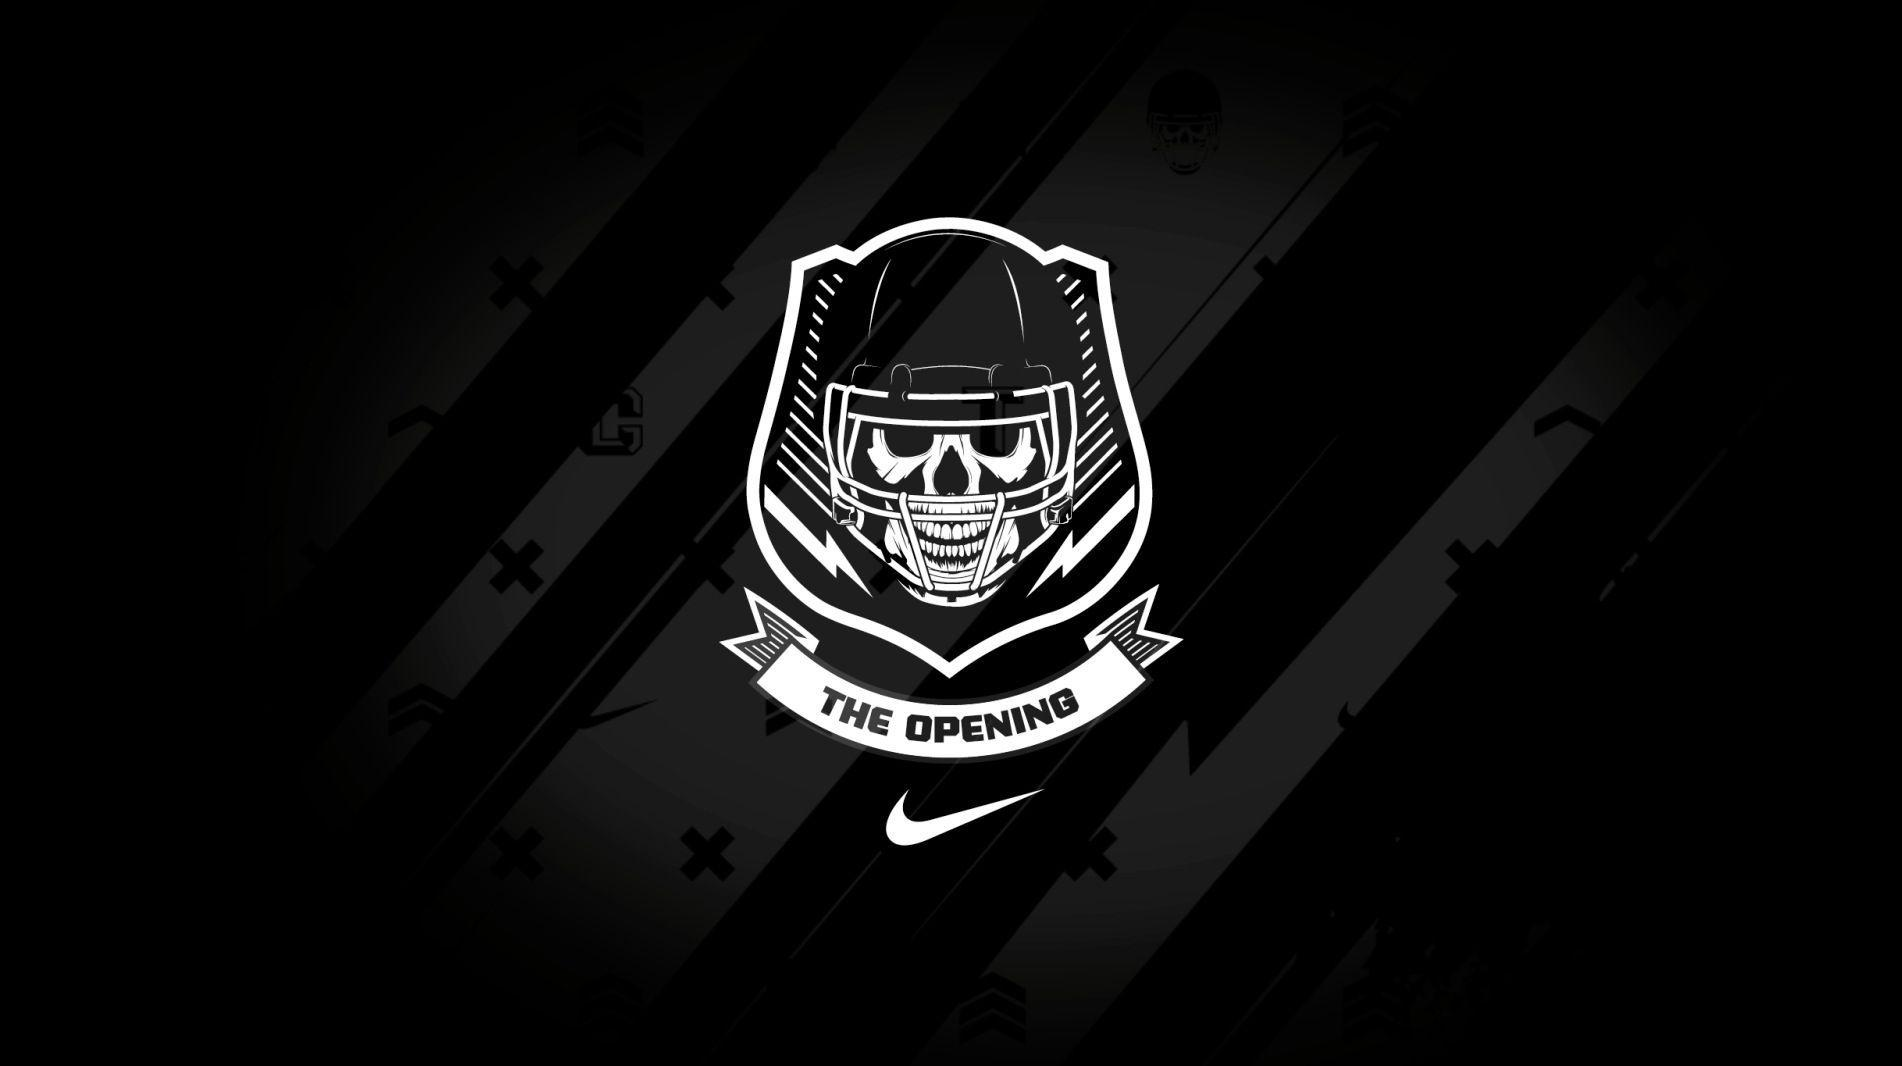 Nike football wallpaper